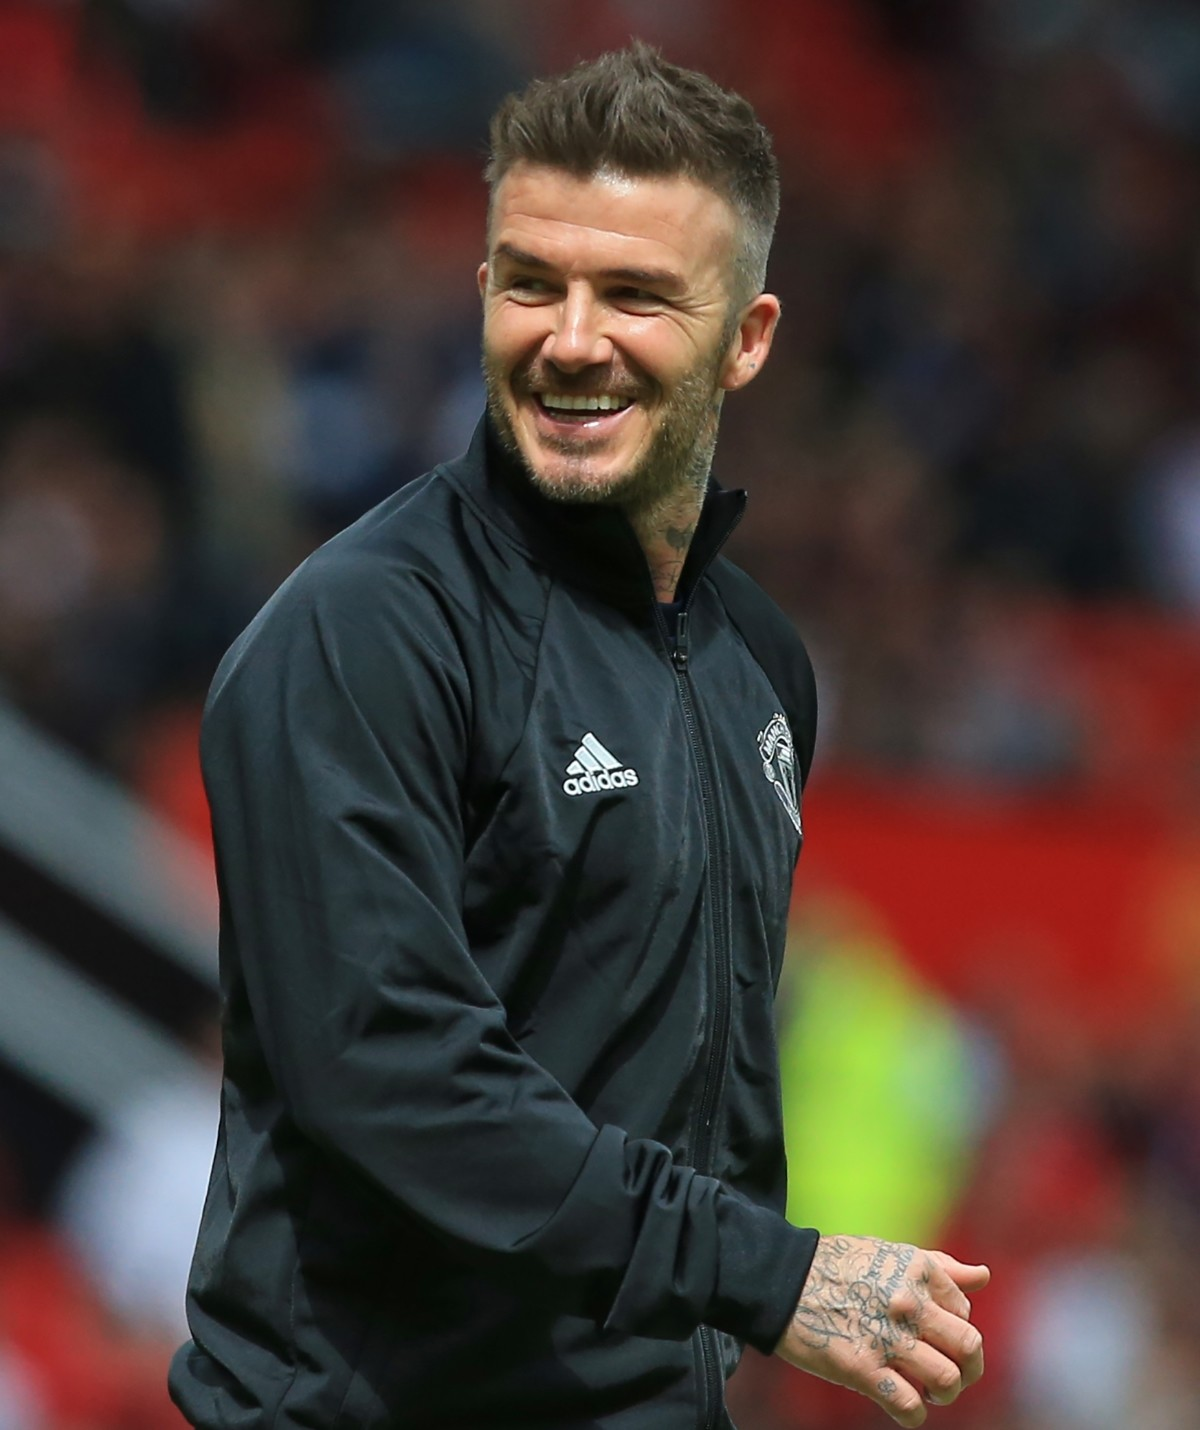 David Beckham wanted at Man United as fans prefer him to Sanchez